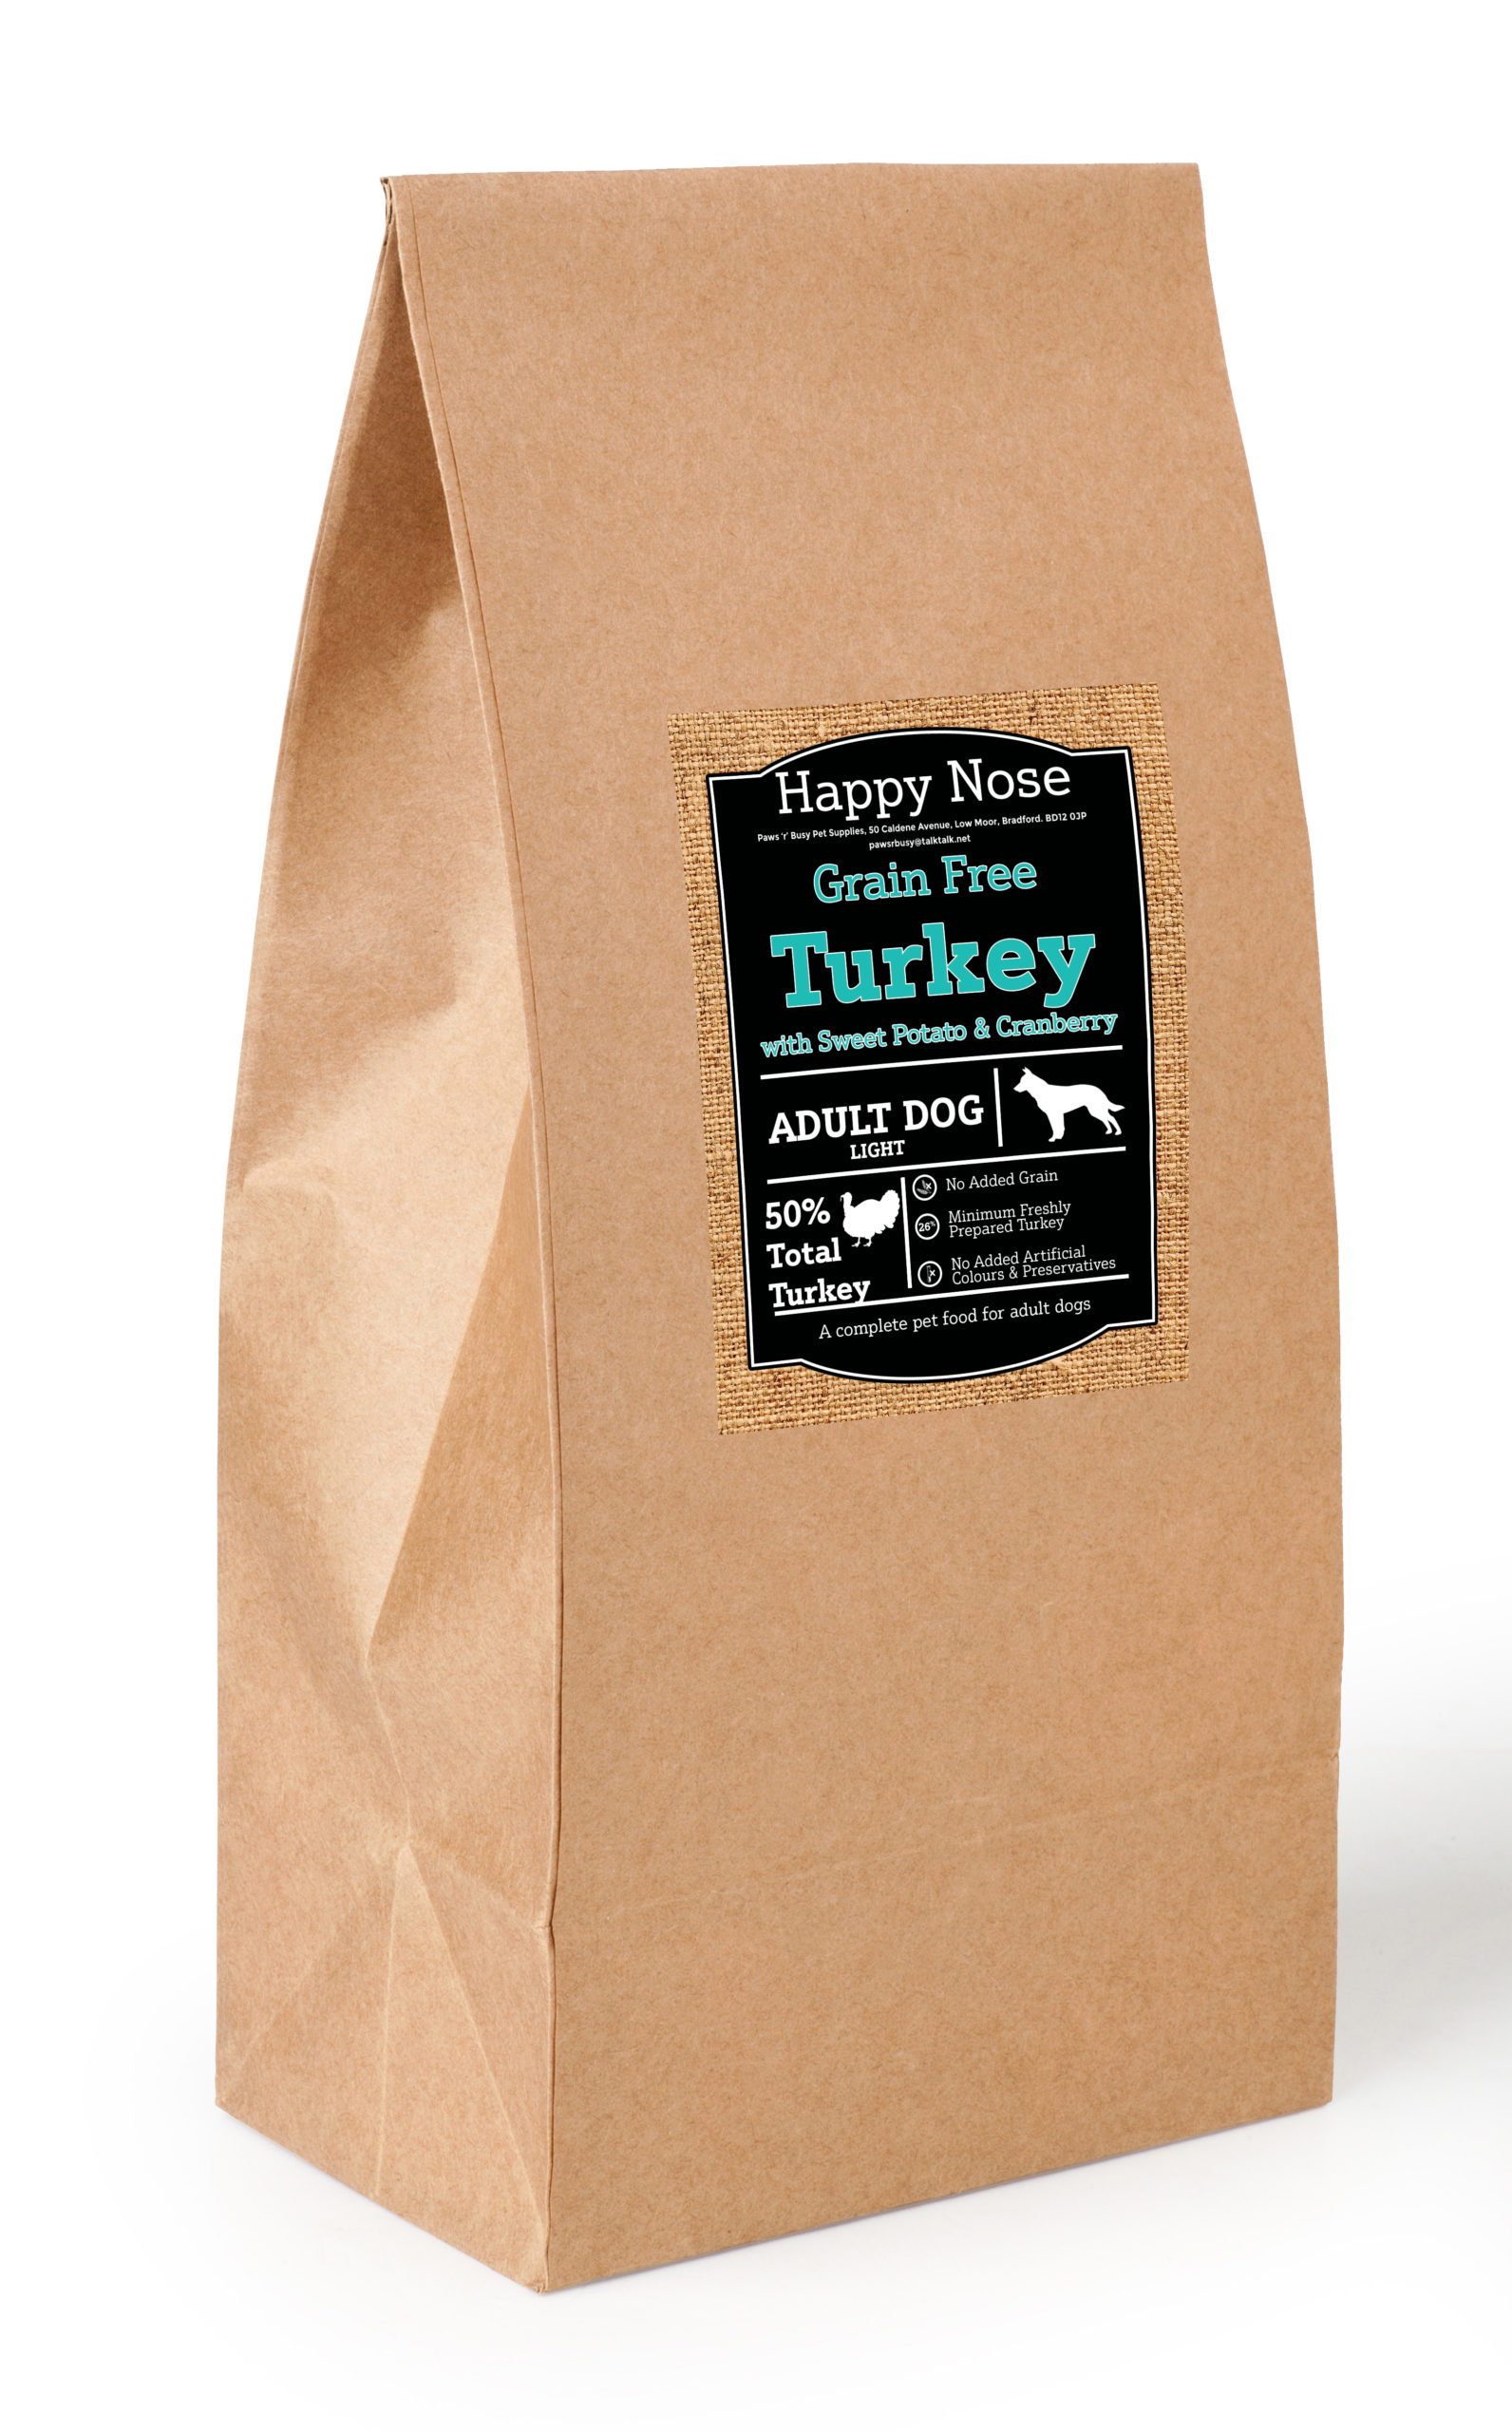 Light Turkey, Sweet Potato & Cranberry Adult Dog Food